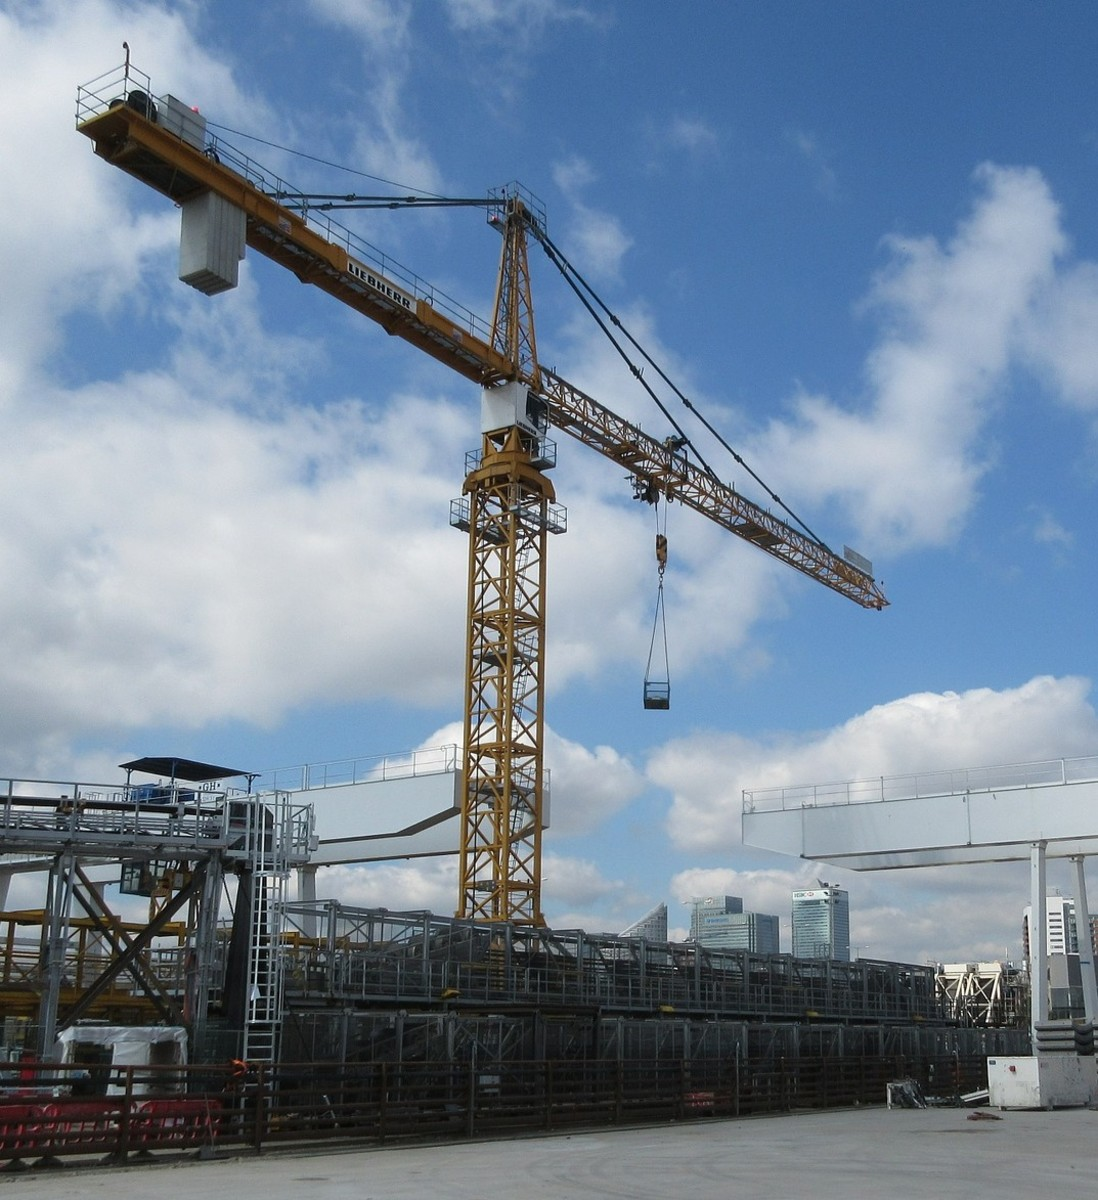 A tower crane. The counterbalance consists of a collection of concrete slabs mounted near the end of the boom.